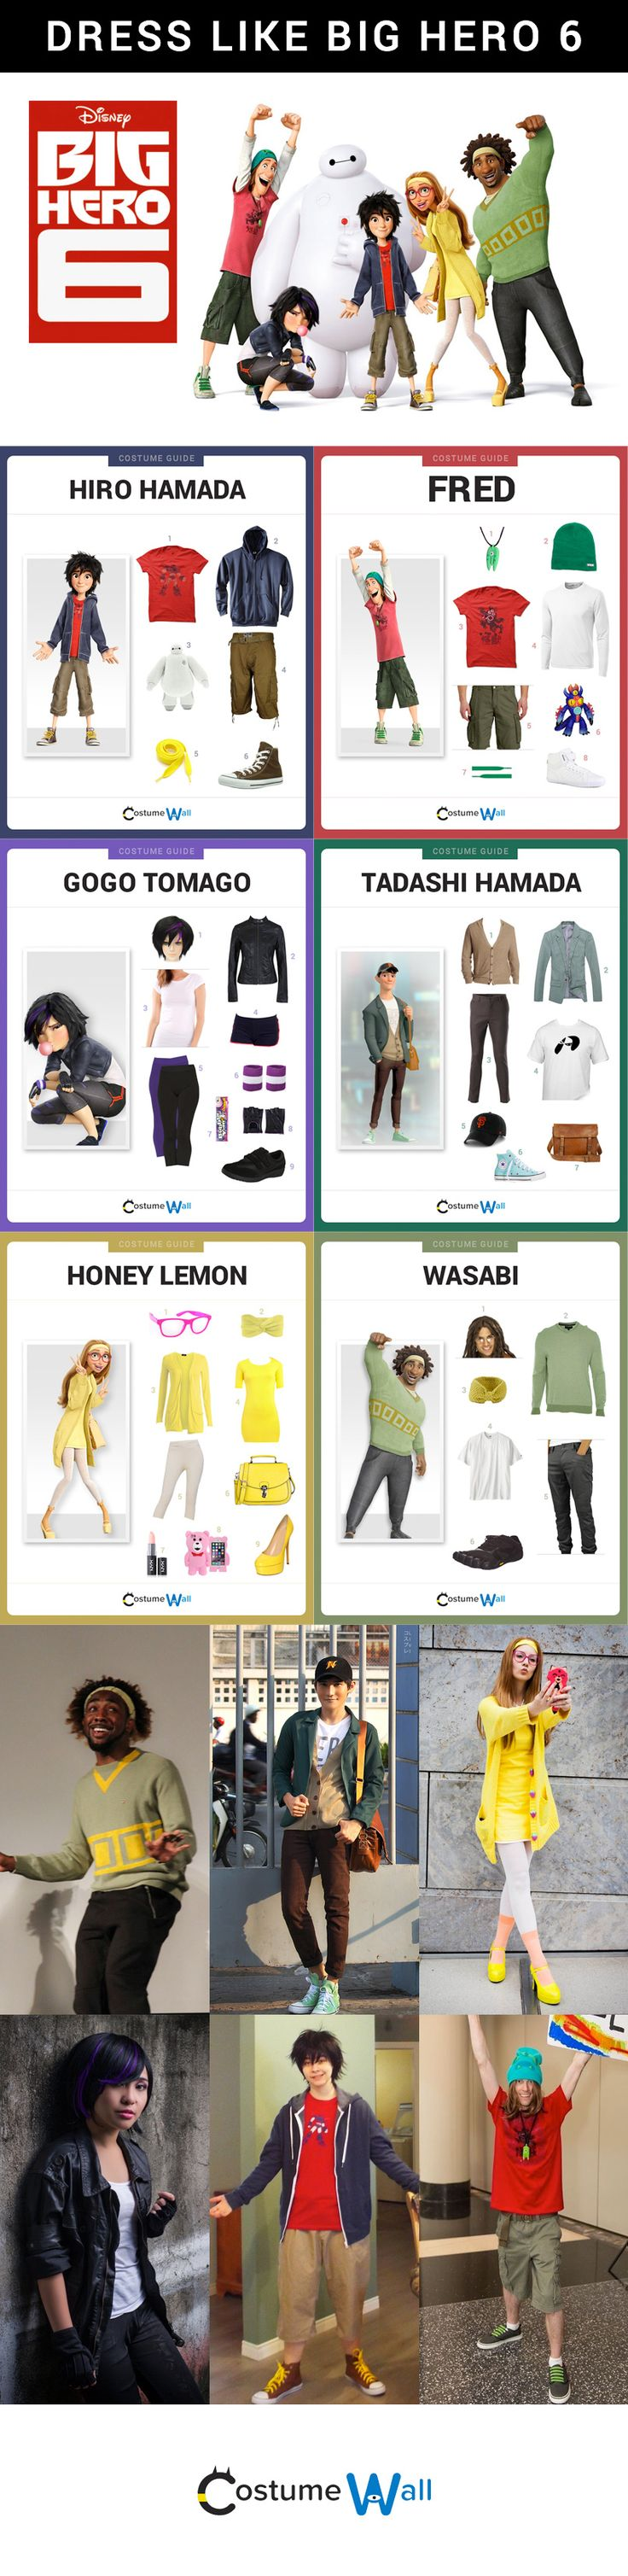 Check out these amazing costumes and cosplays from the Disney movie, Big Hero 6.